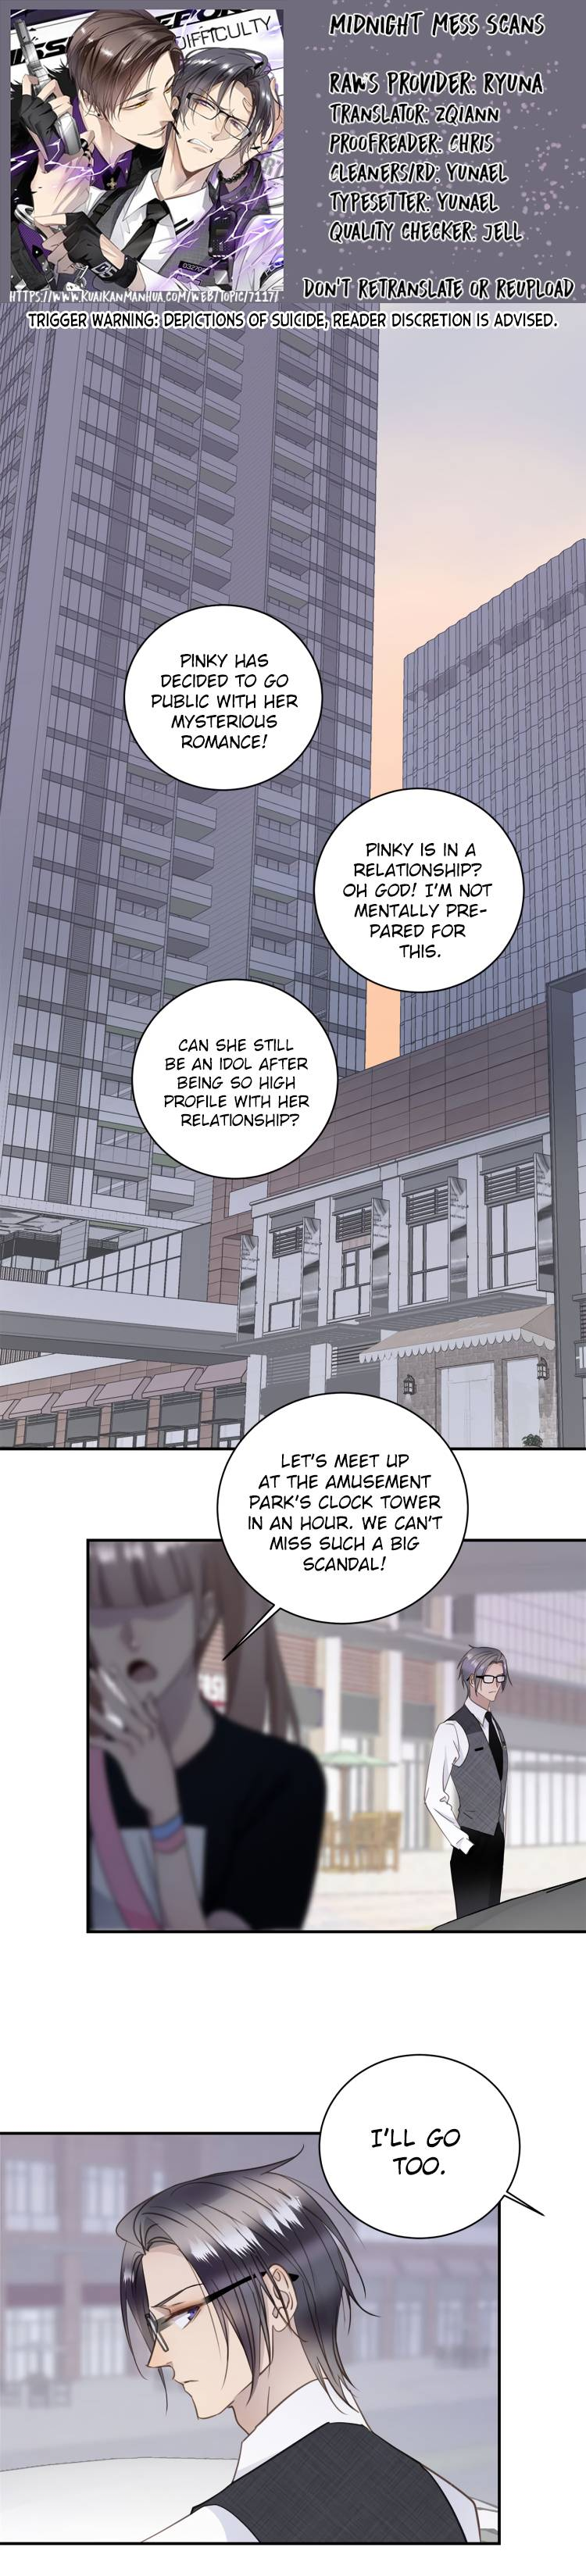 Mr. Liar - chapter 12 - #1